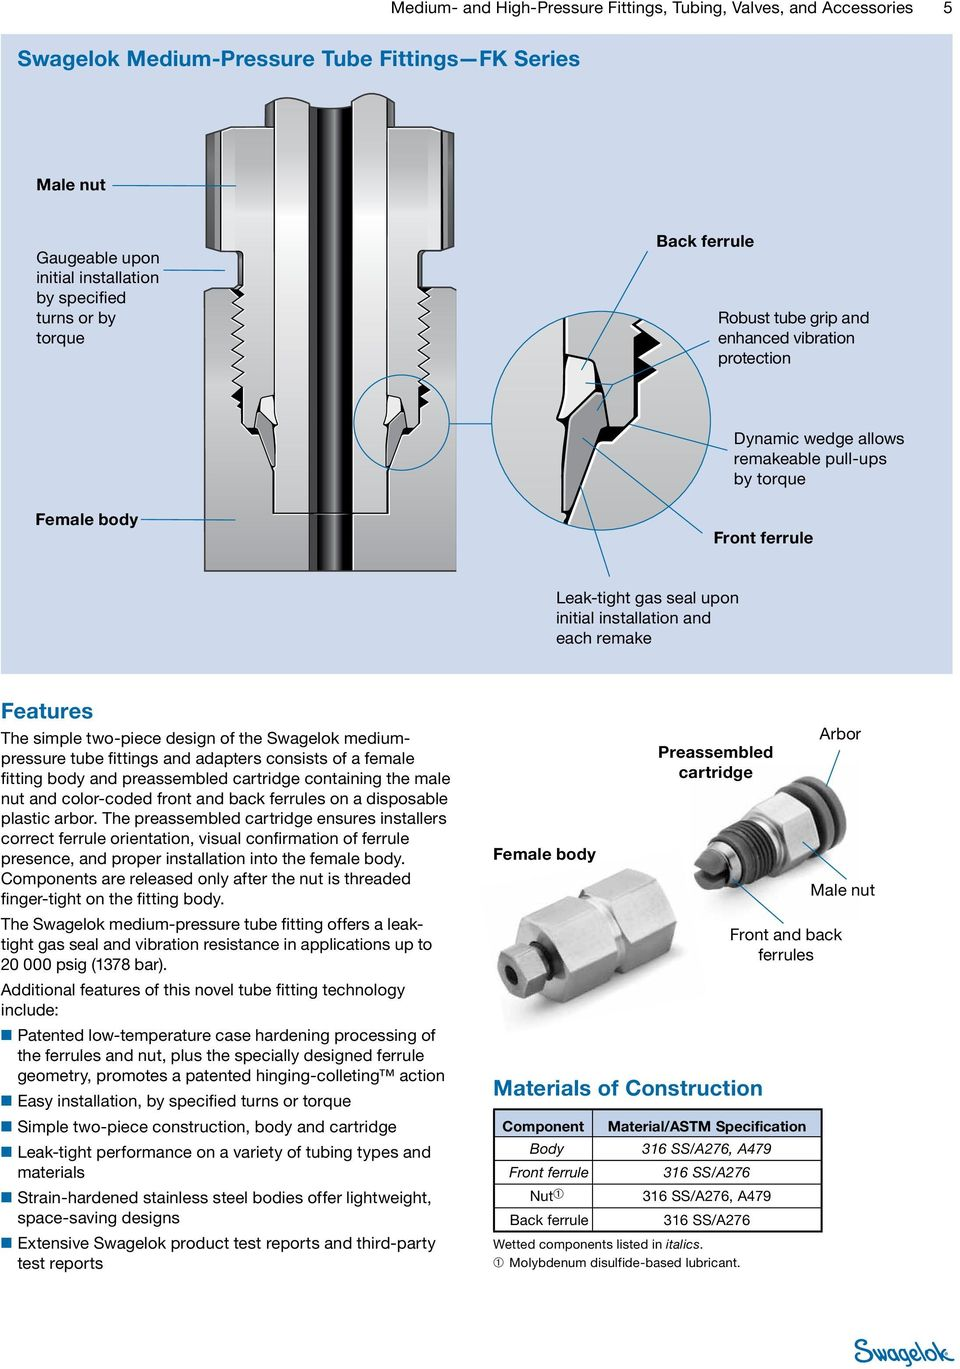 two-piece design of the Swagelok mediumpressure tube fittings and adapters consists of a female fitting body and preassembled cartridge containing the male nut and color-coded front and back ferrules